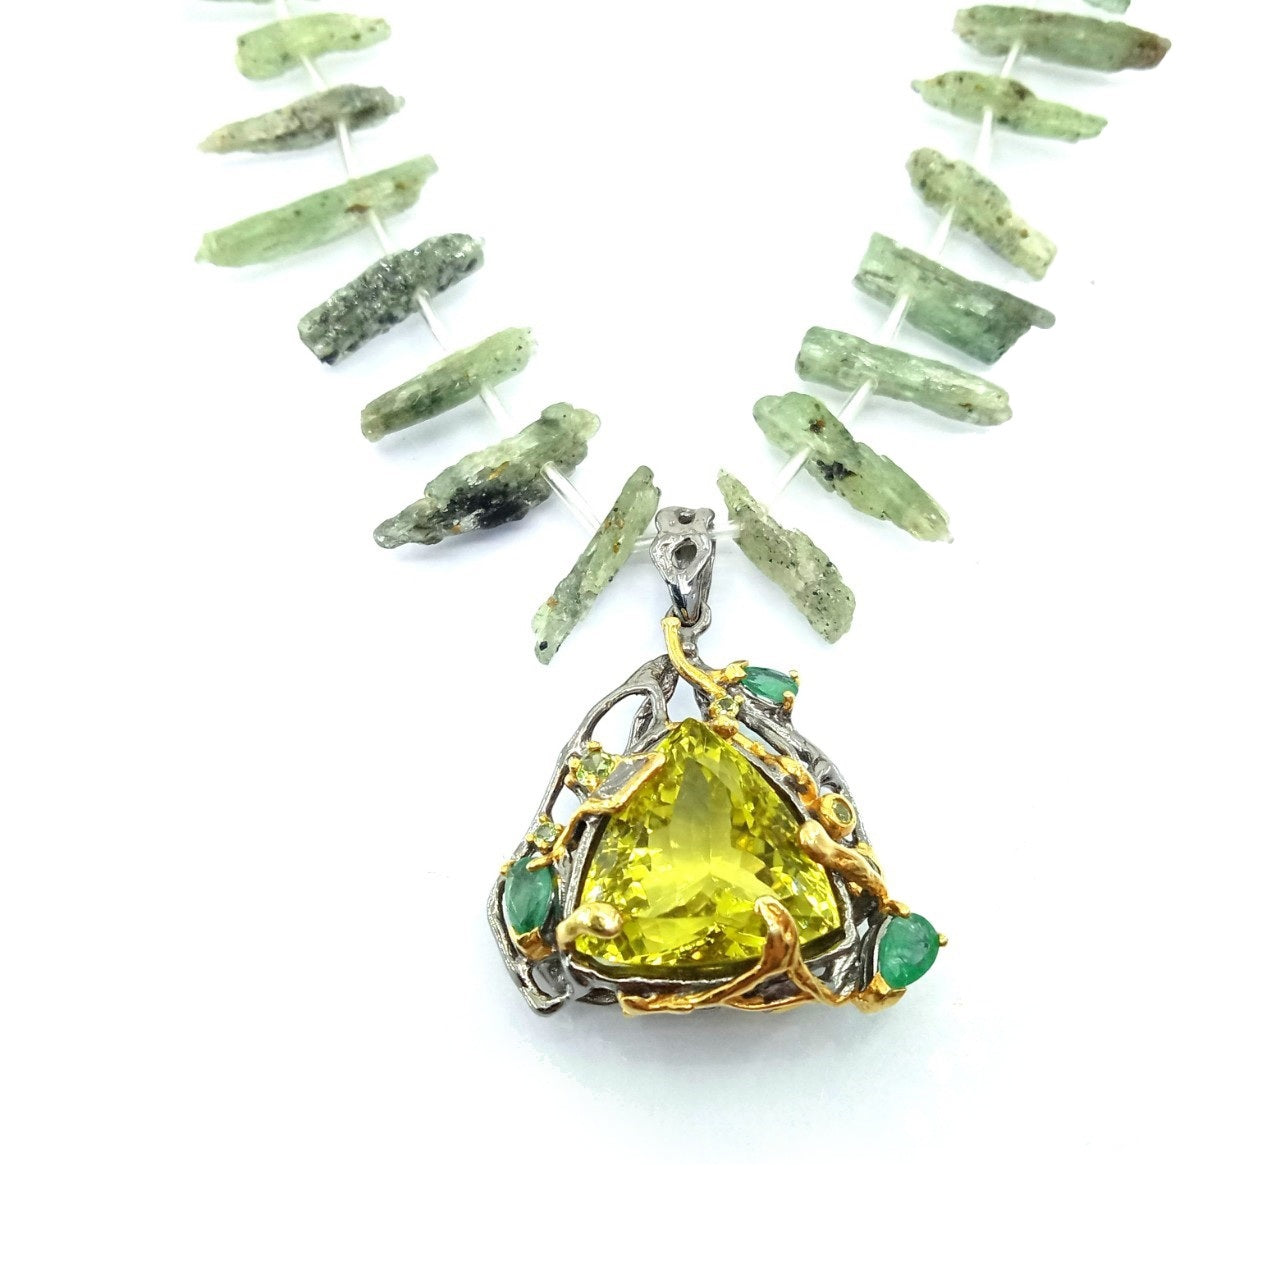 One Of A Kind Lemon Quartz Emerald Peridot And Prehnite Bead Necklaces